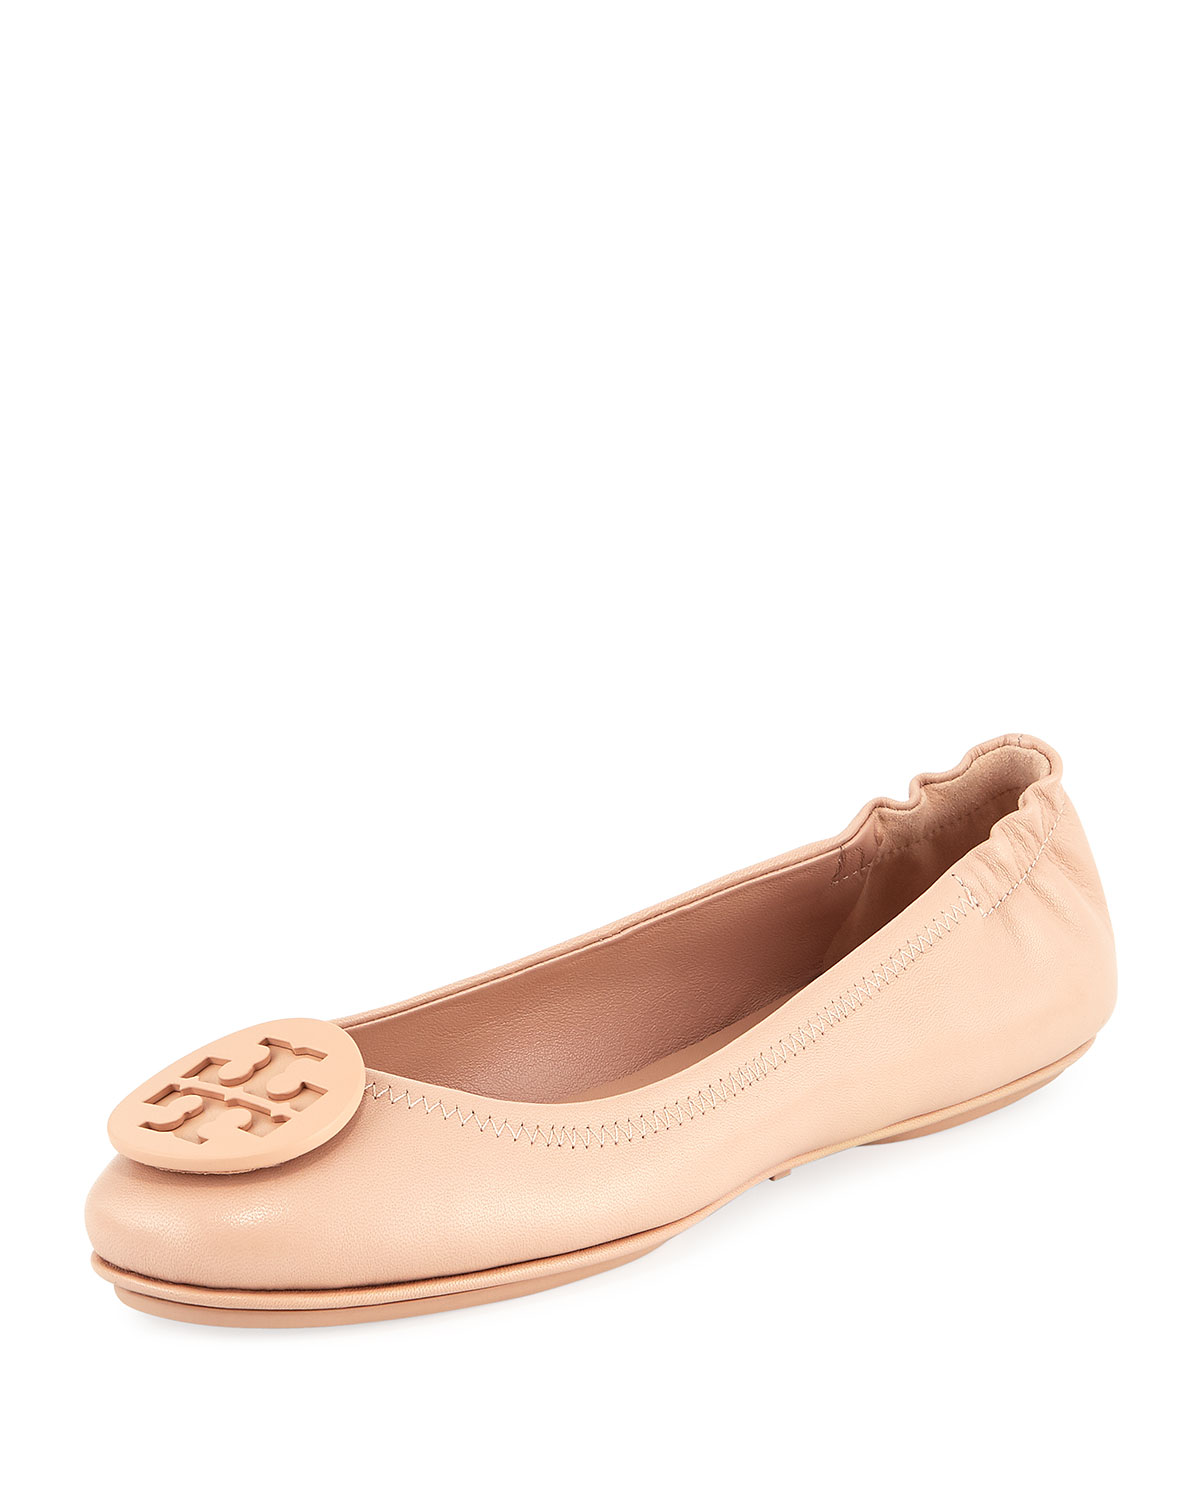 caa09c7a9 Tory Burch Minnie Travel Logo Ballet Flats